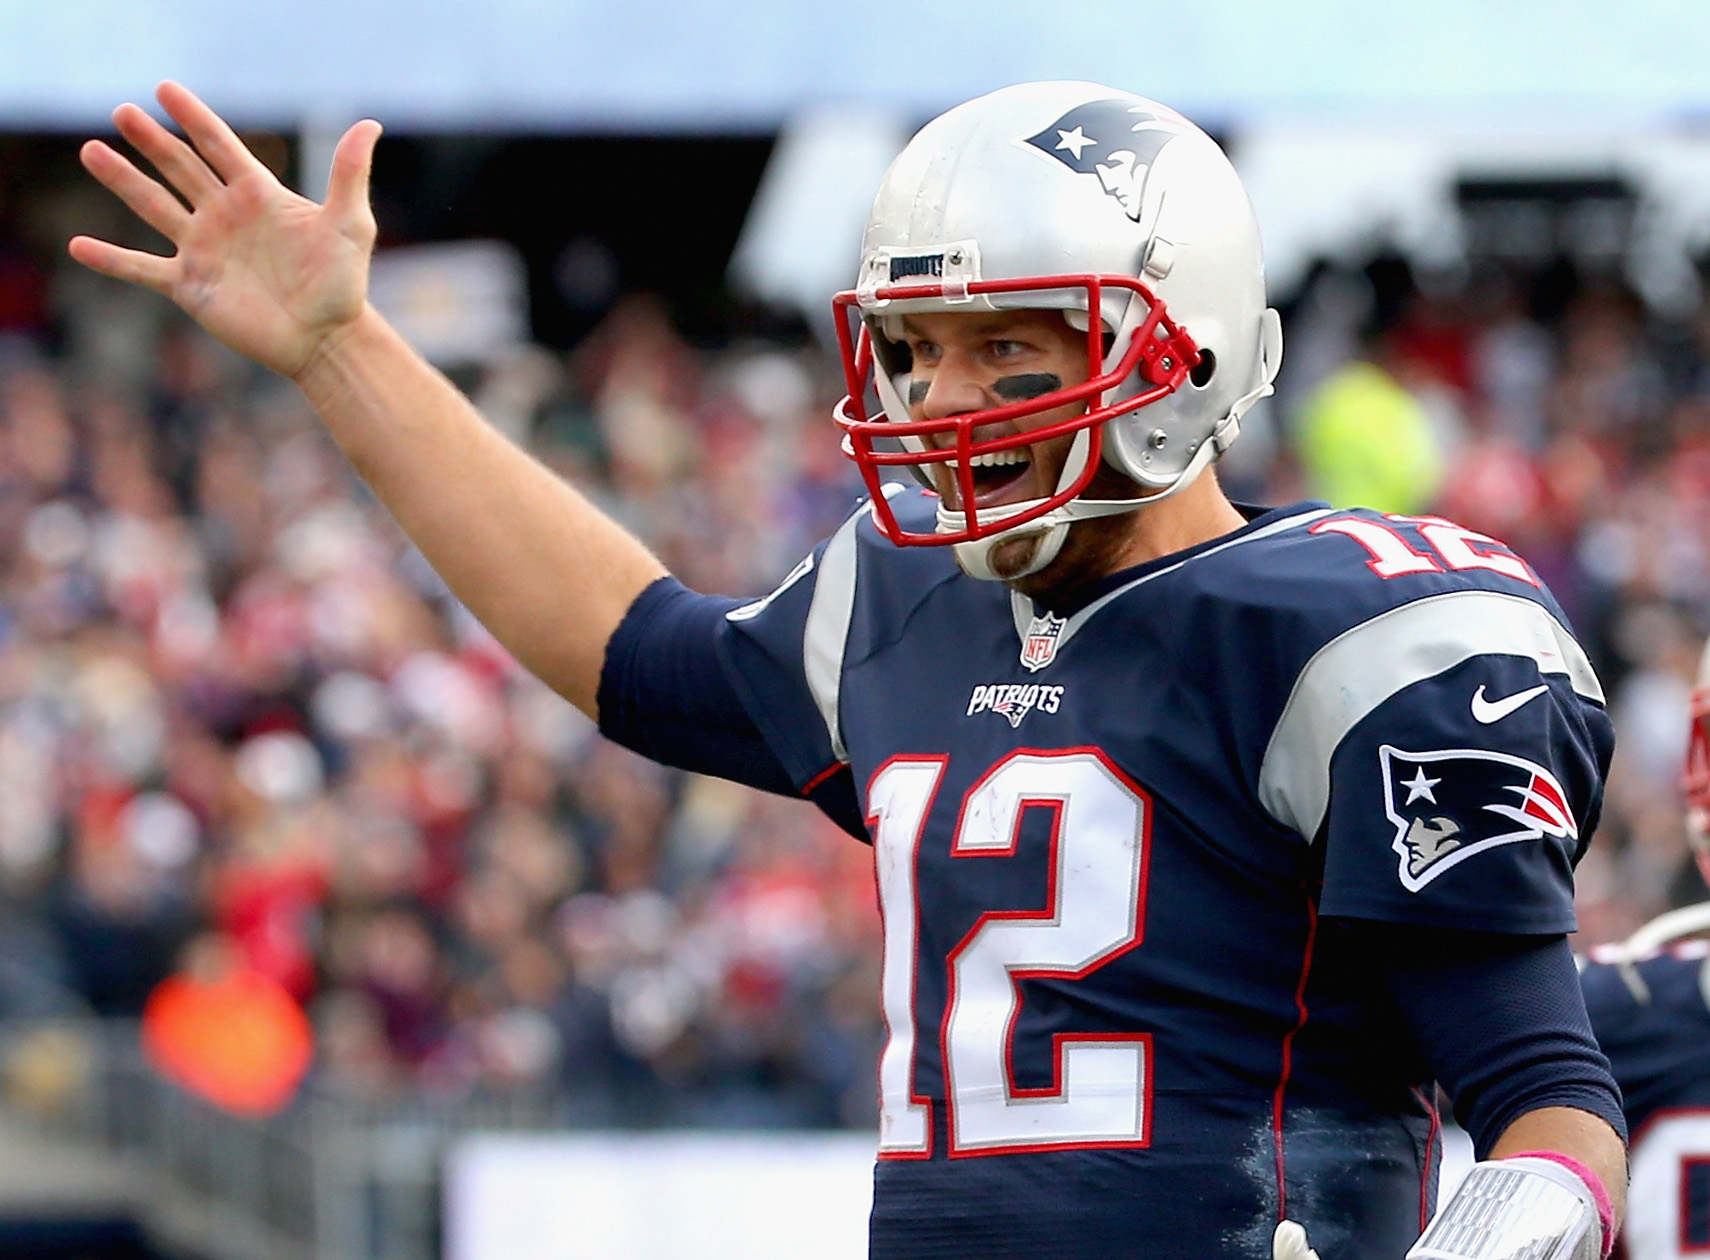 tom brady spends time with throwing coach during playoff - HD1710×1260